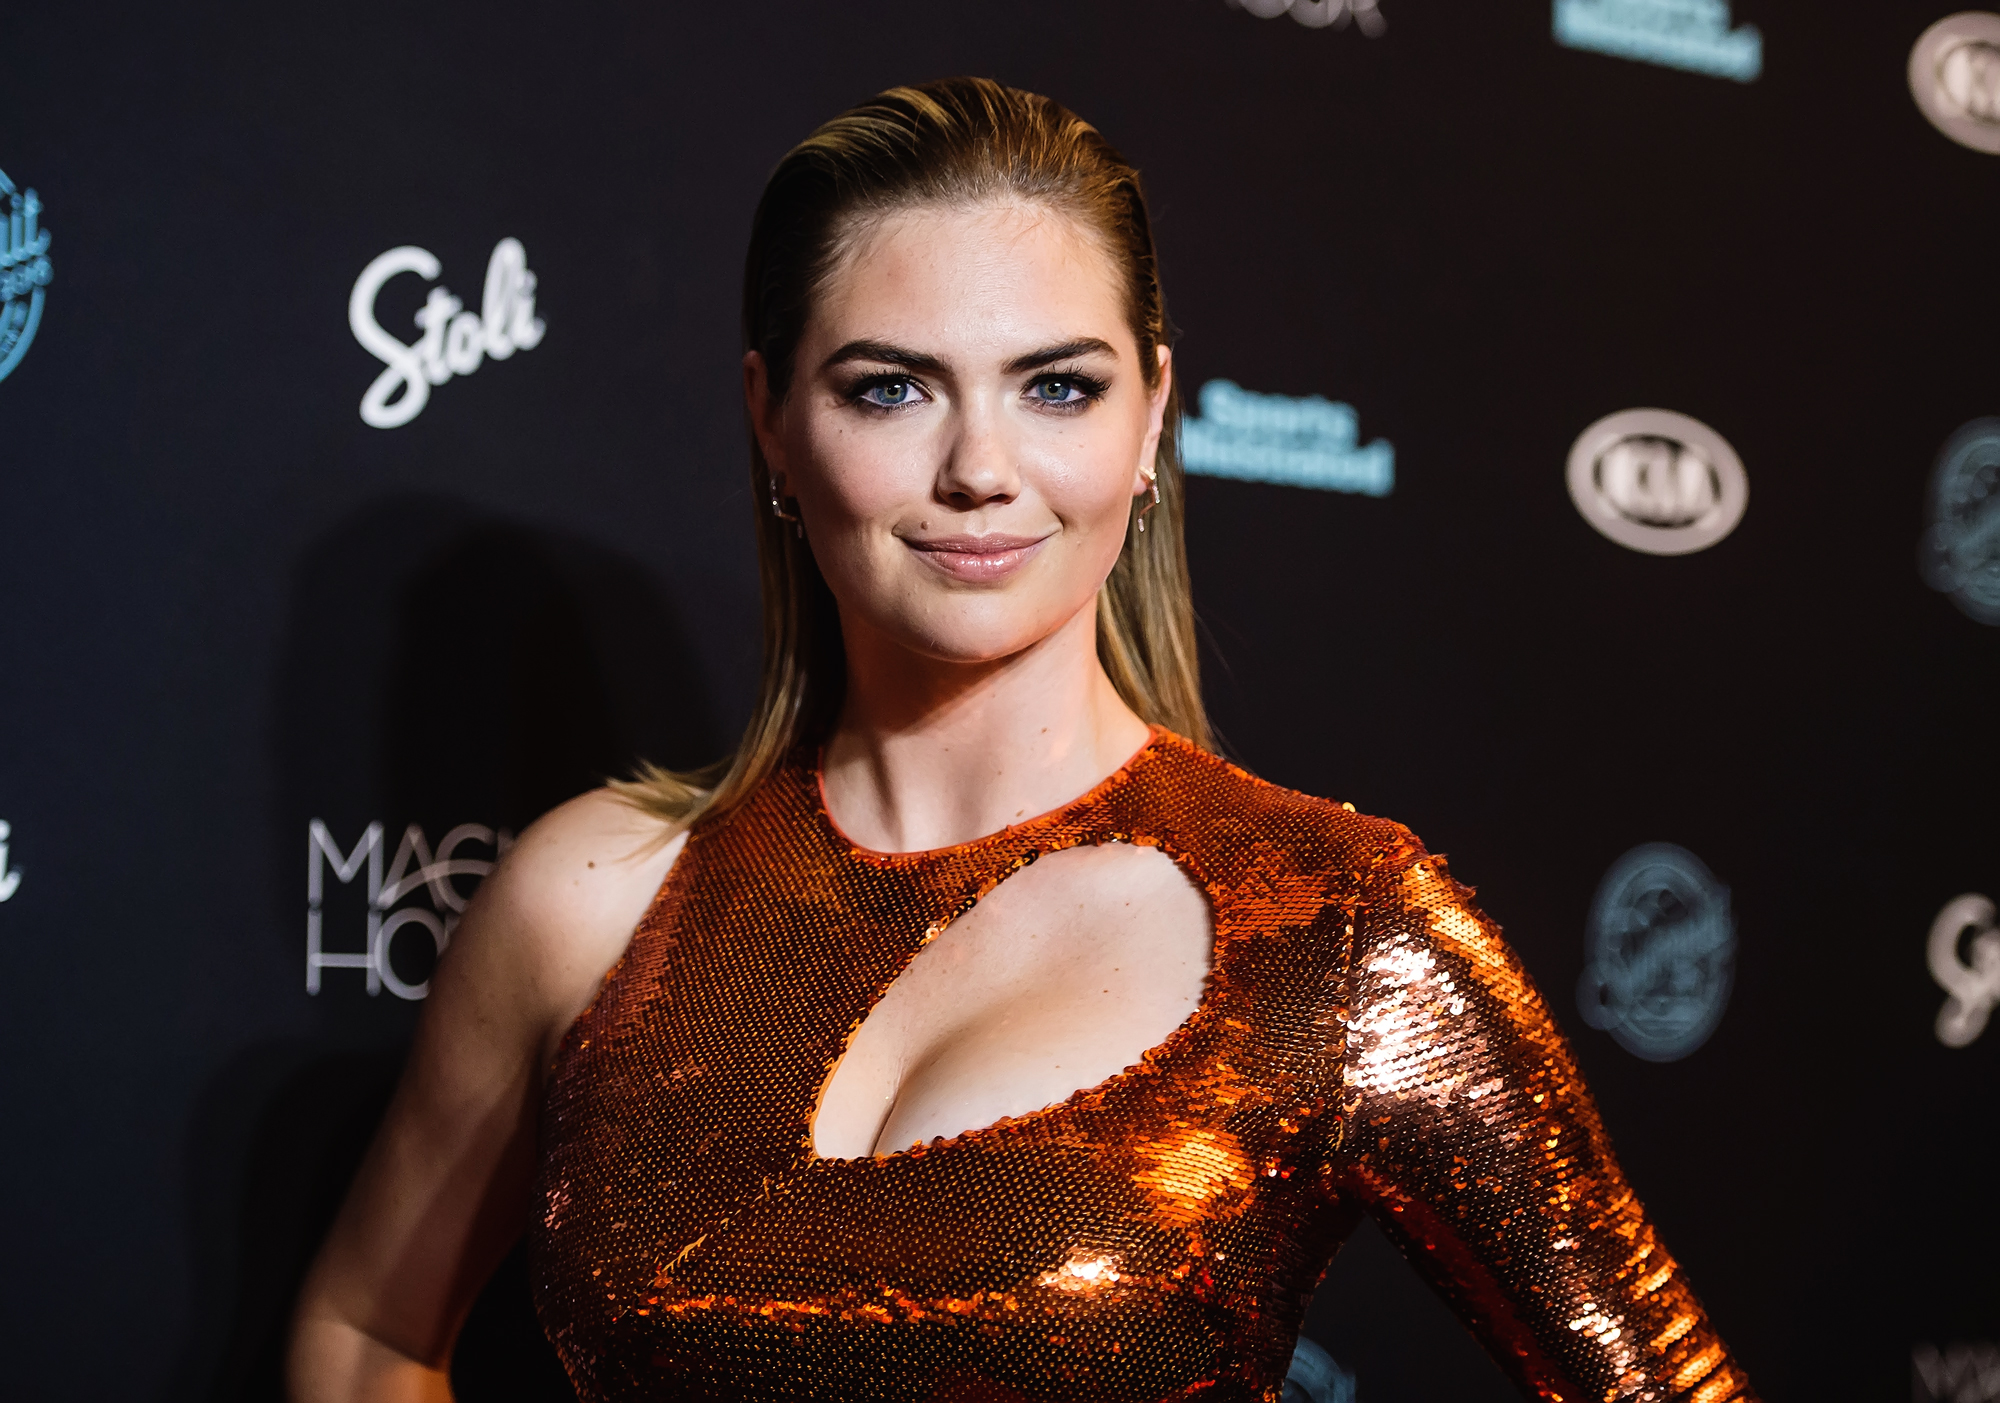 Kate Upton Fell Off a Giant Rock During Her <em>Sports Illustrated</em> Swimsuit Shoot, and It Looked Painful